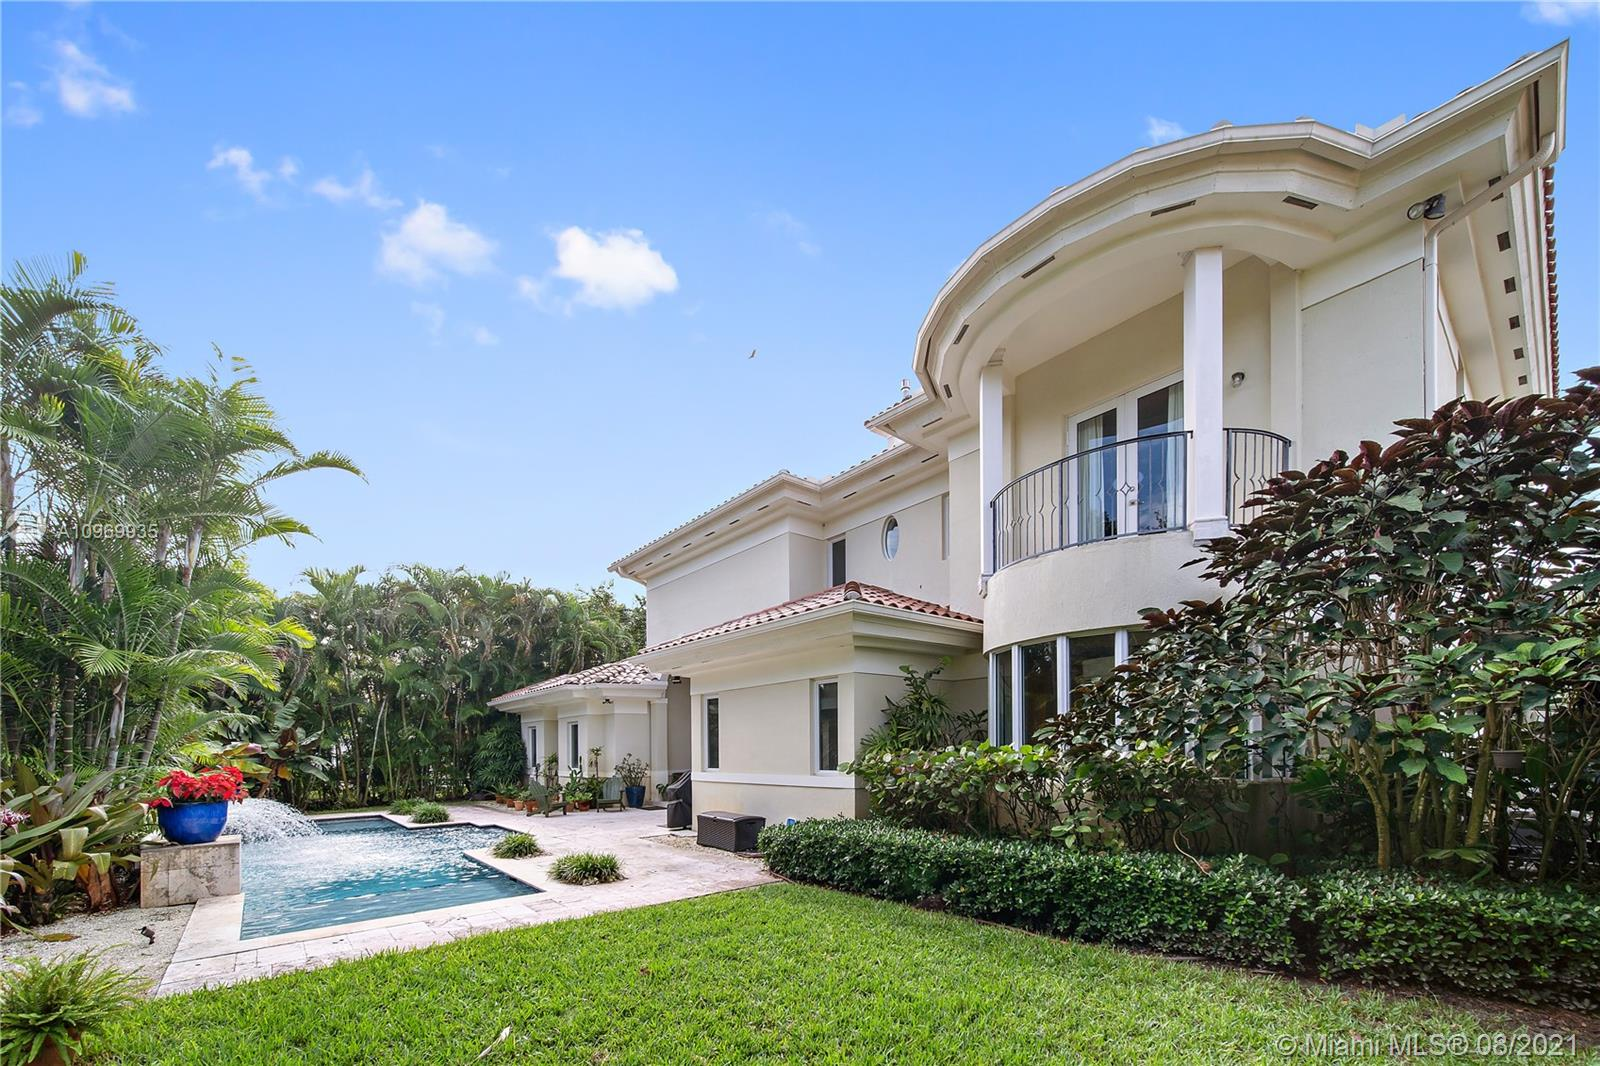 "Exquisite two-story residence on one of the most prestigious streets in Coral Gables.  Elegantly designed and custom-built in 2011 with sophisticated finishes throughout. This 5 beds/6 baths pool home caters to all discerning tastes.  The interior features an extraordinary gourmet kitchen with high end dacor appliances, distinctive walk-in wine cellar, deluxe master suite with spacious sitting room and loft, all bedrooms en-suite, specially commissioned Brazilian wood moldings and artisan handcrafted twisted iron railings, inviting living space with striking details that satisfies all the senses.  You'll love the lush manicured yard complete with paved patio and sparkling pool perfect for entertaining.  Classically styled to be the perfect representation of life in ""The City Beautiful"""